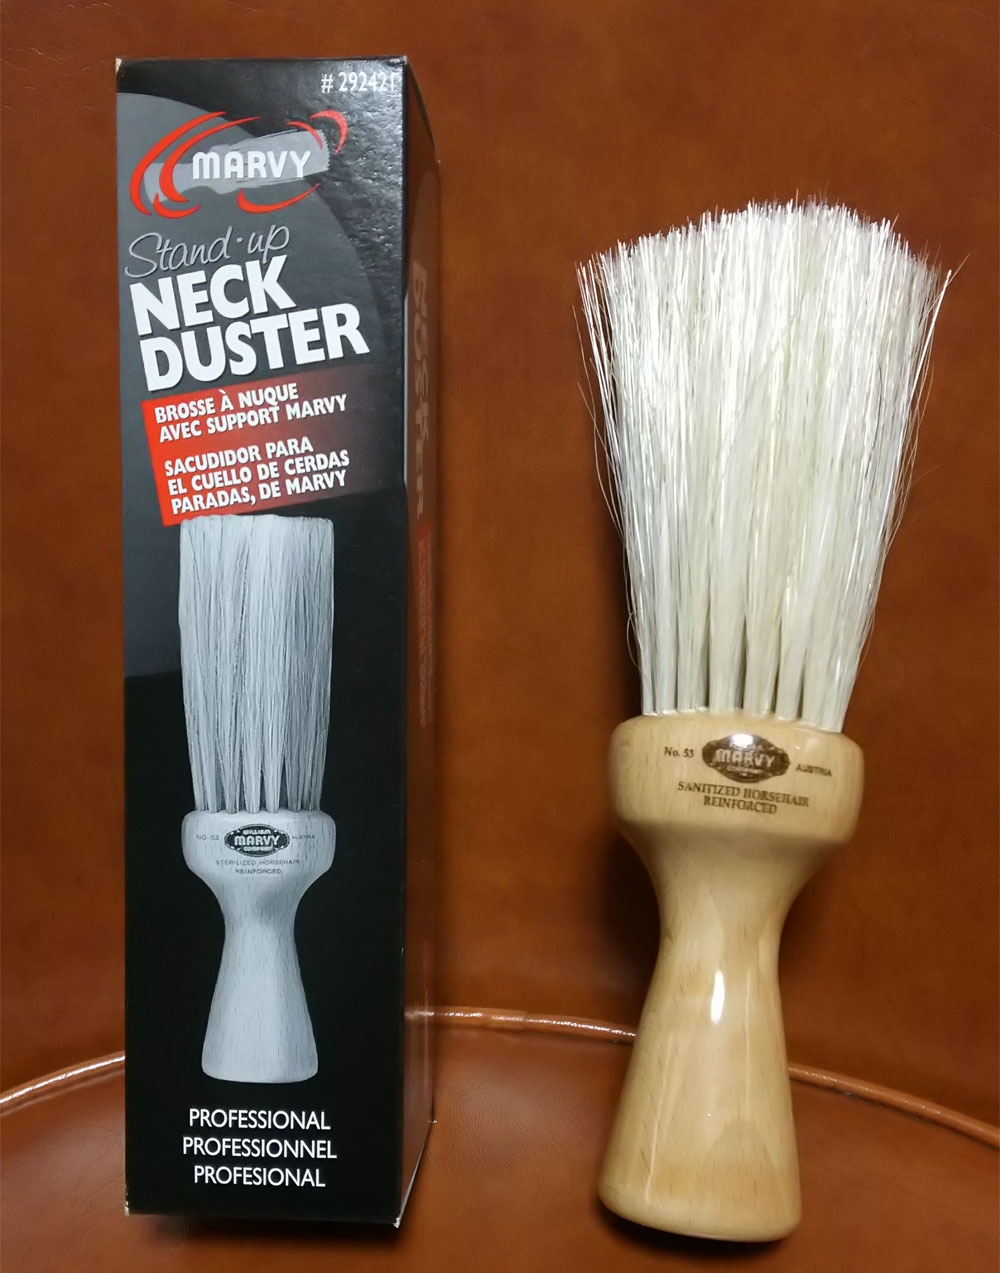 Marvy Stand UP Neck Duster